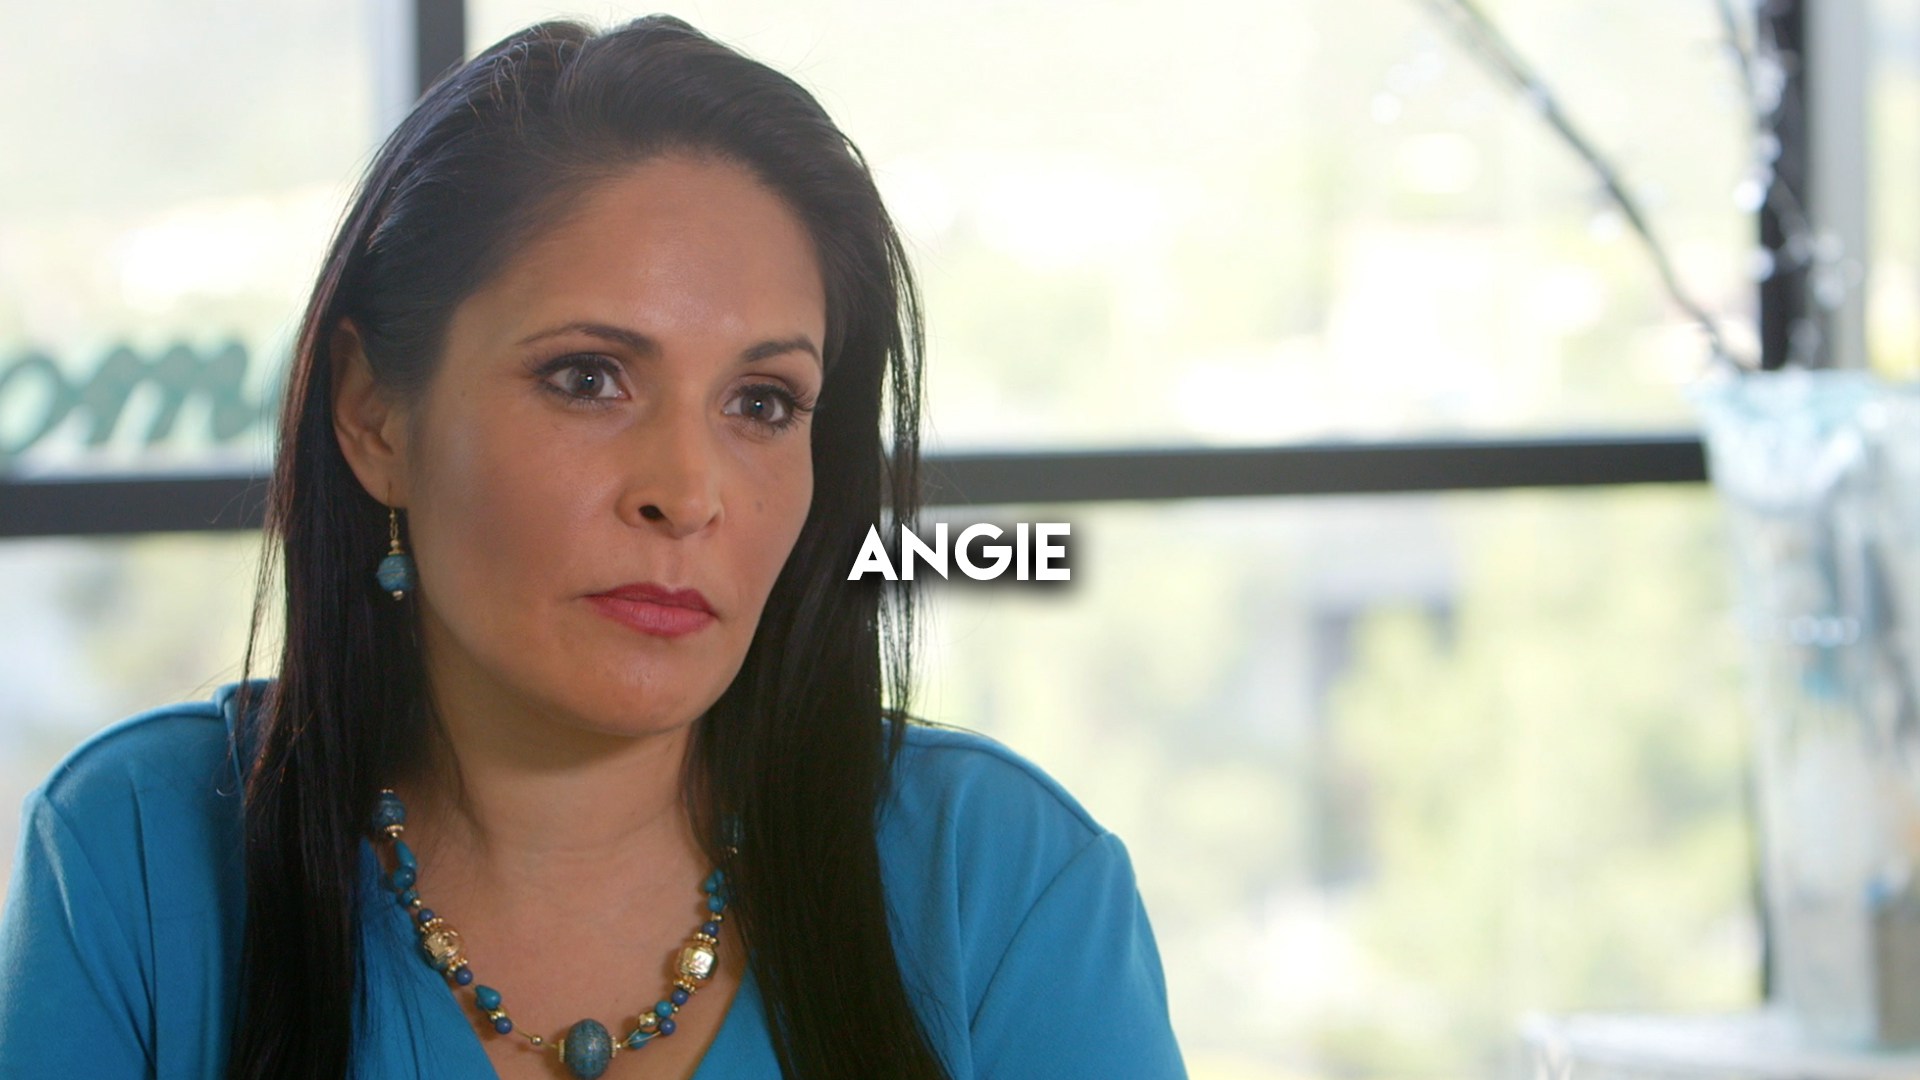 Angie-5by20